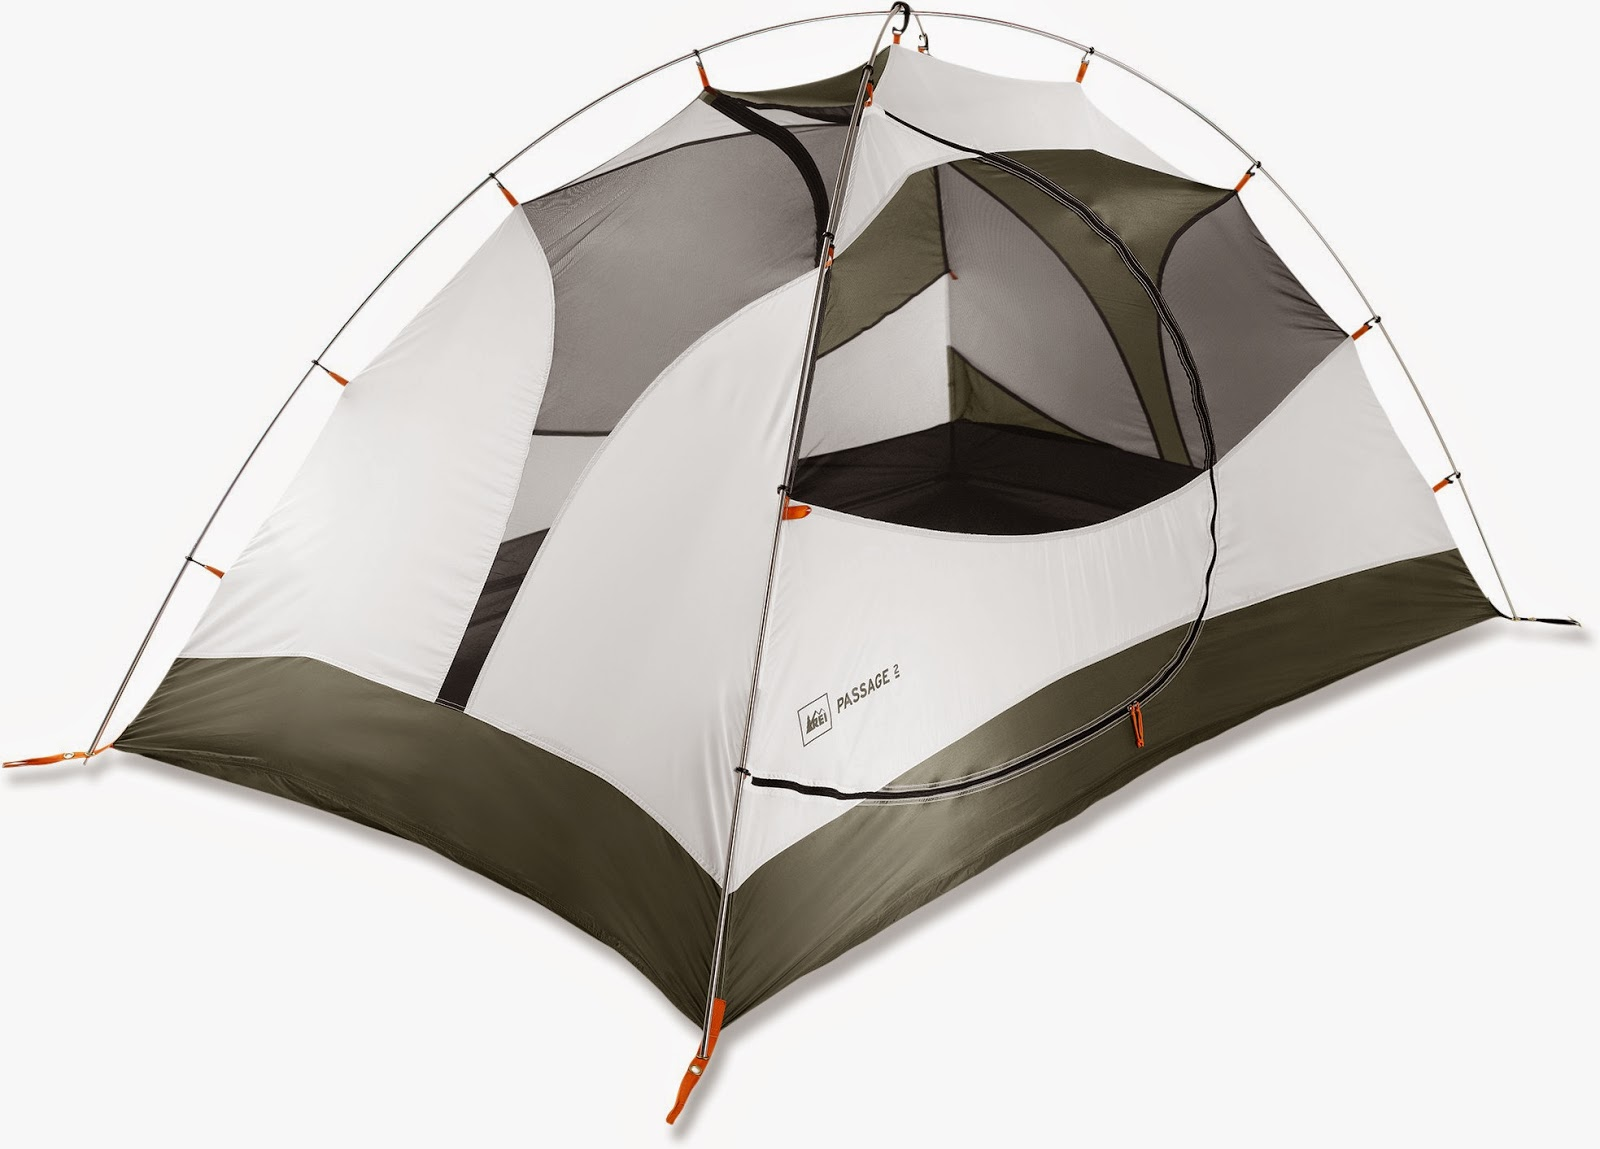 & Best Backpacking Tents for Less Than $250 - Appalachian Mountain Club